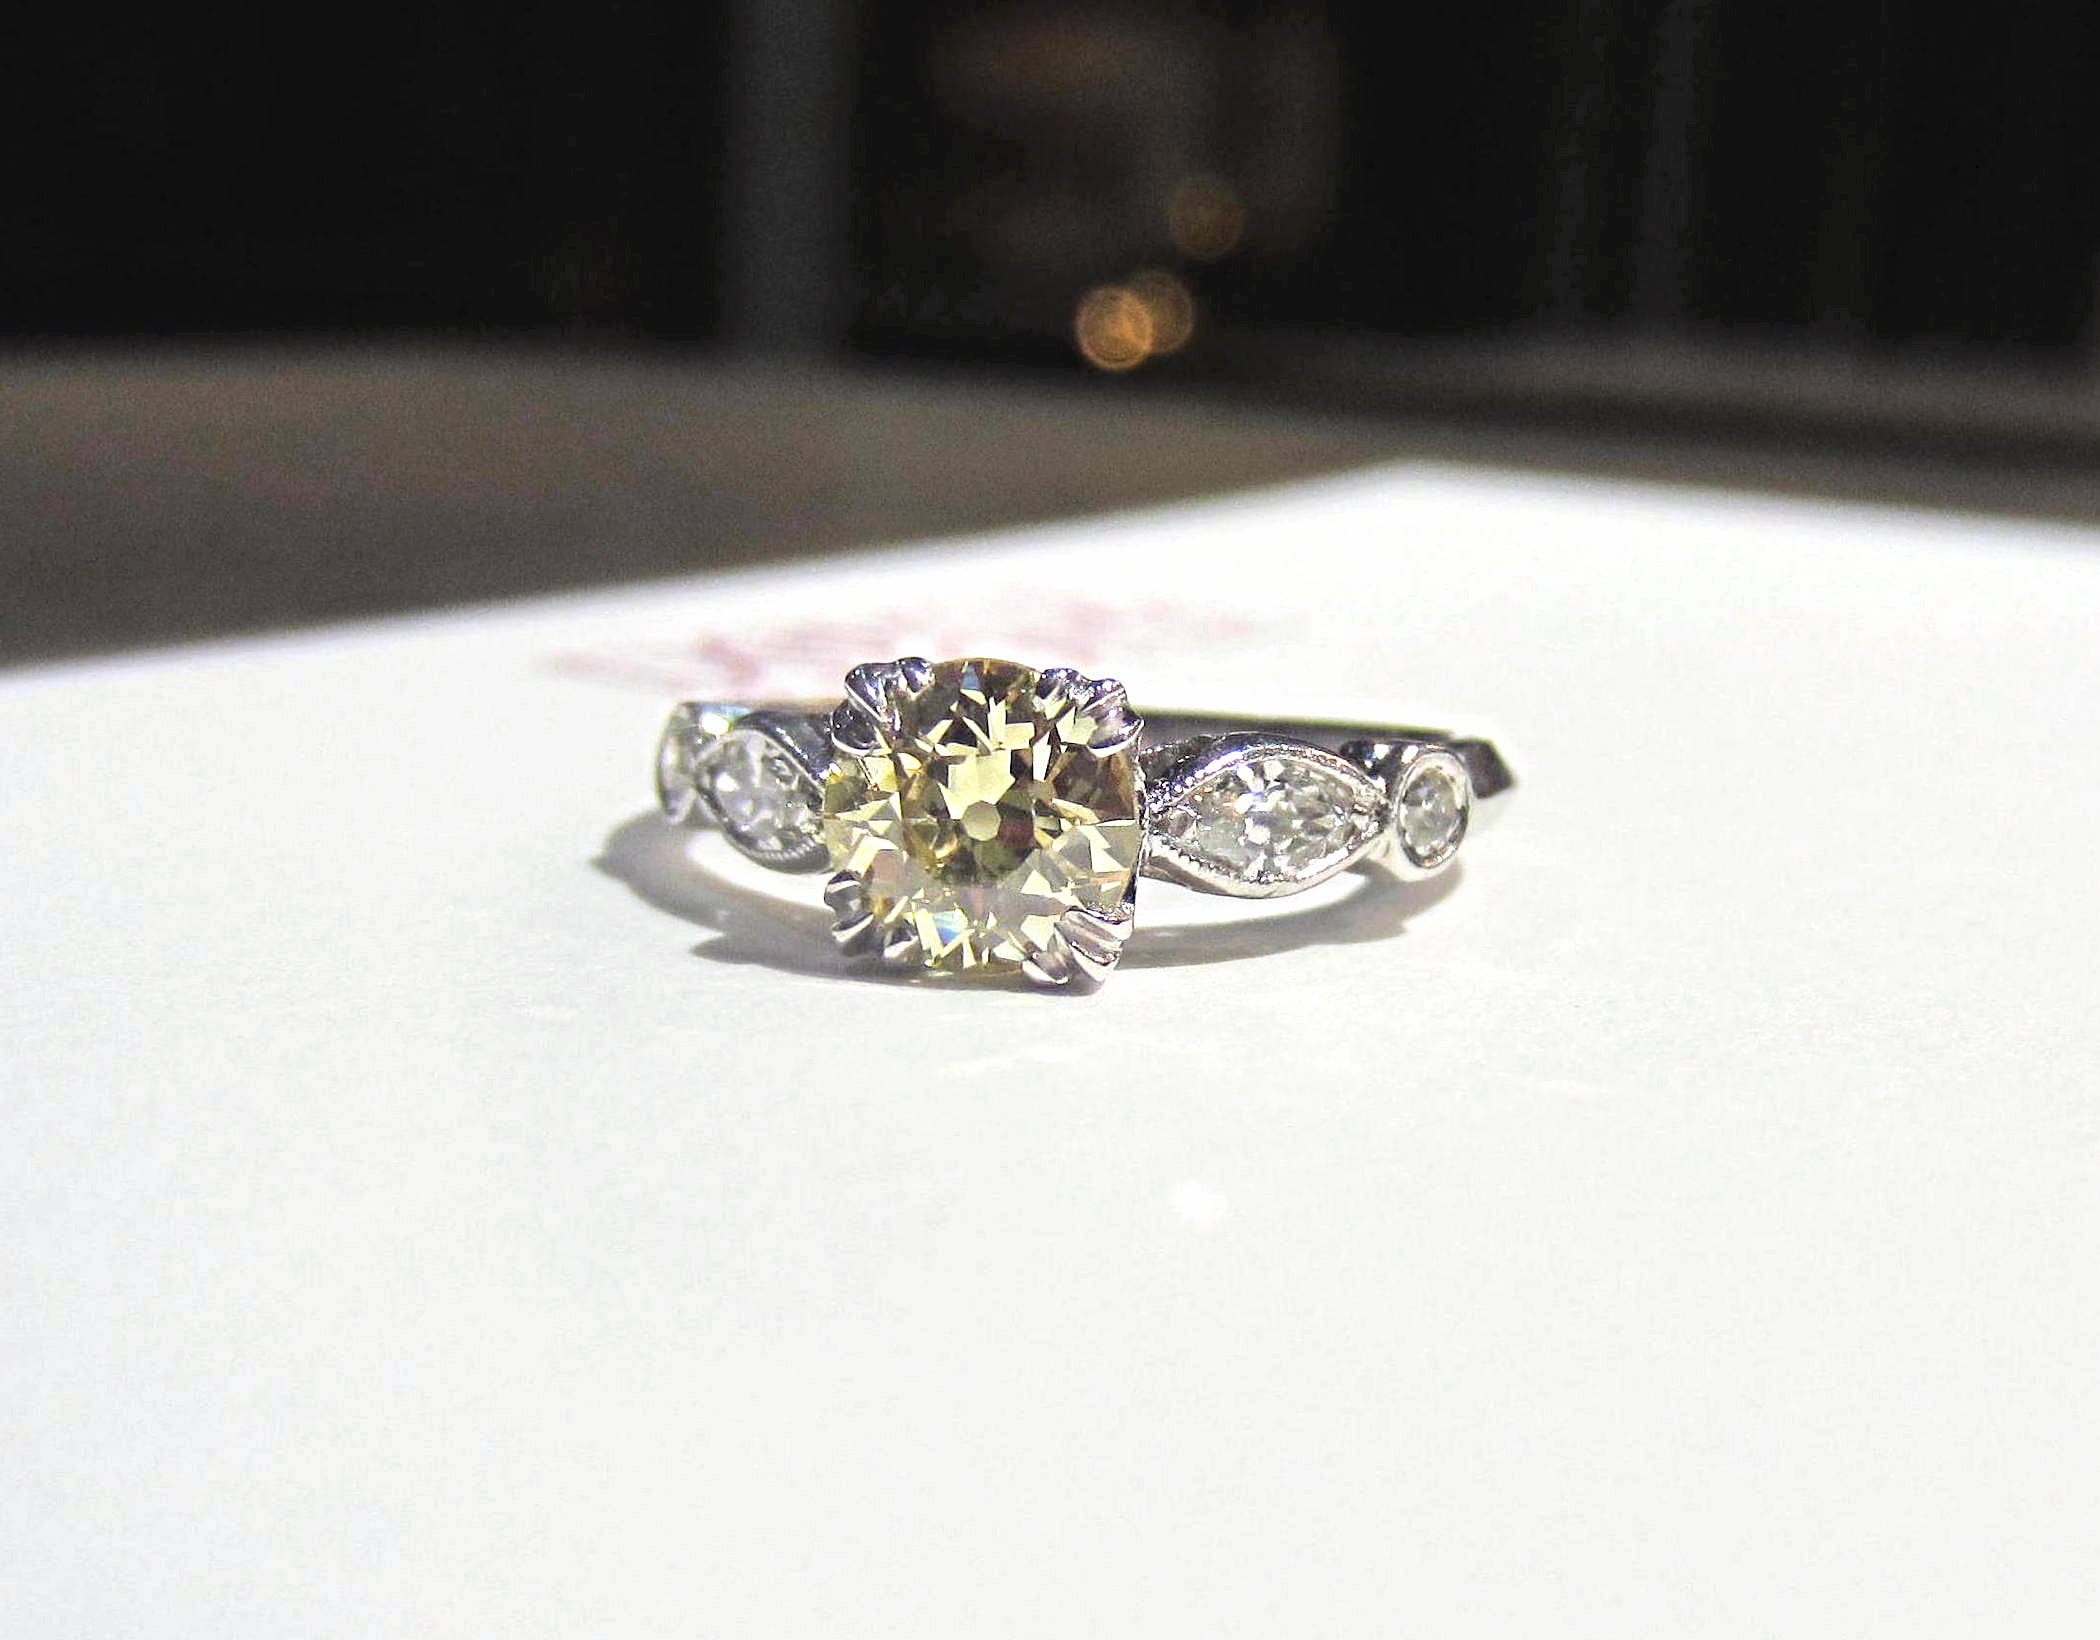 Vintage fancy yellow diamond engagement ring in platinum from Doyle & Doyle